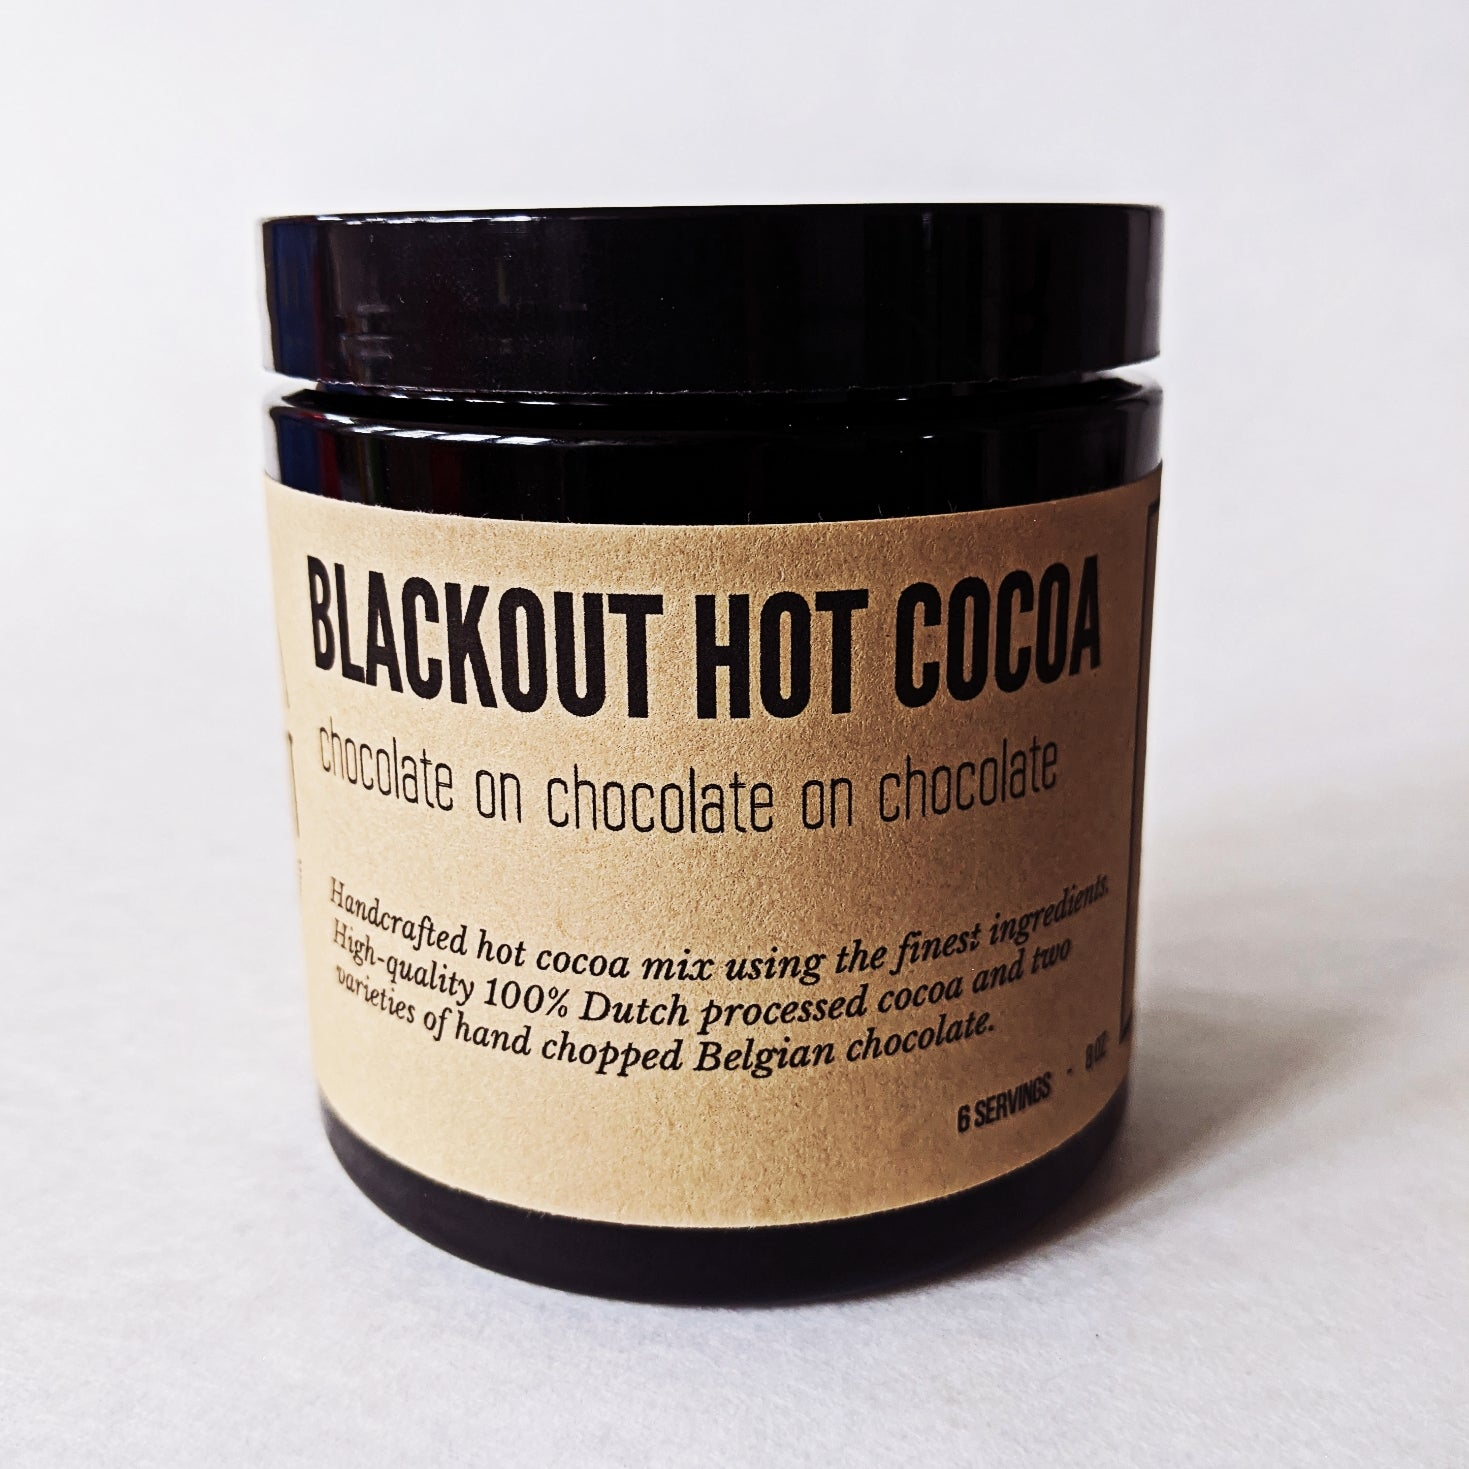 Blackout Baking Co. BLACKOUT Hot Cocoa